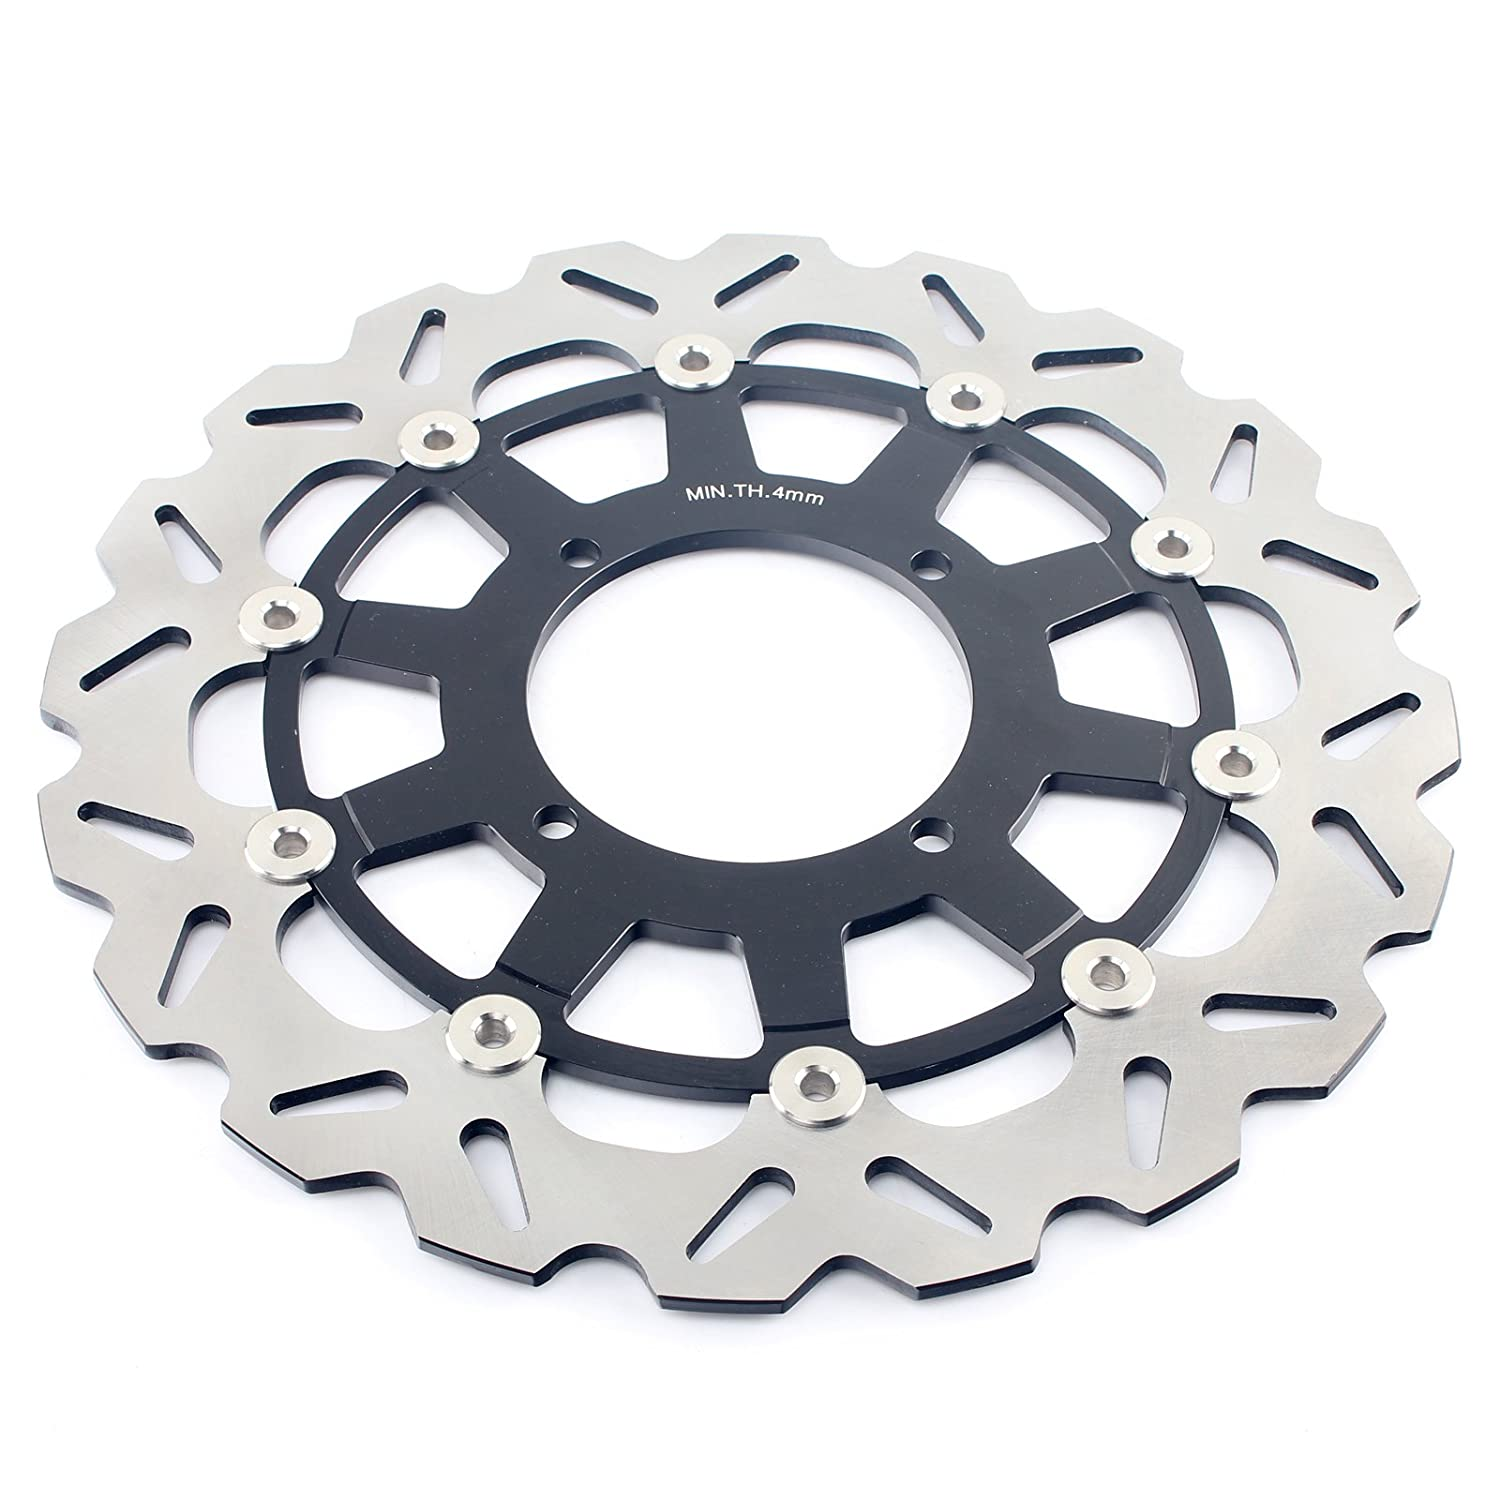 Tarazon 320mm Supermoto Brake Disc Rotor /& Bracket for Kawasaki KX500 KX125 KX250 KX250F KLX250R KLX300R KLX650R